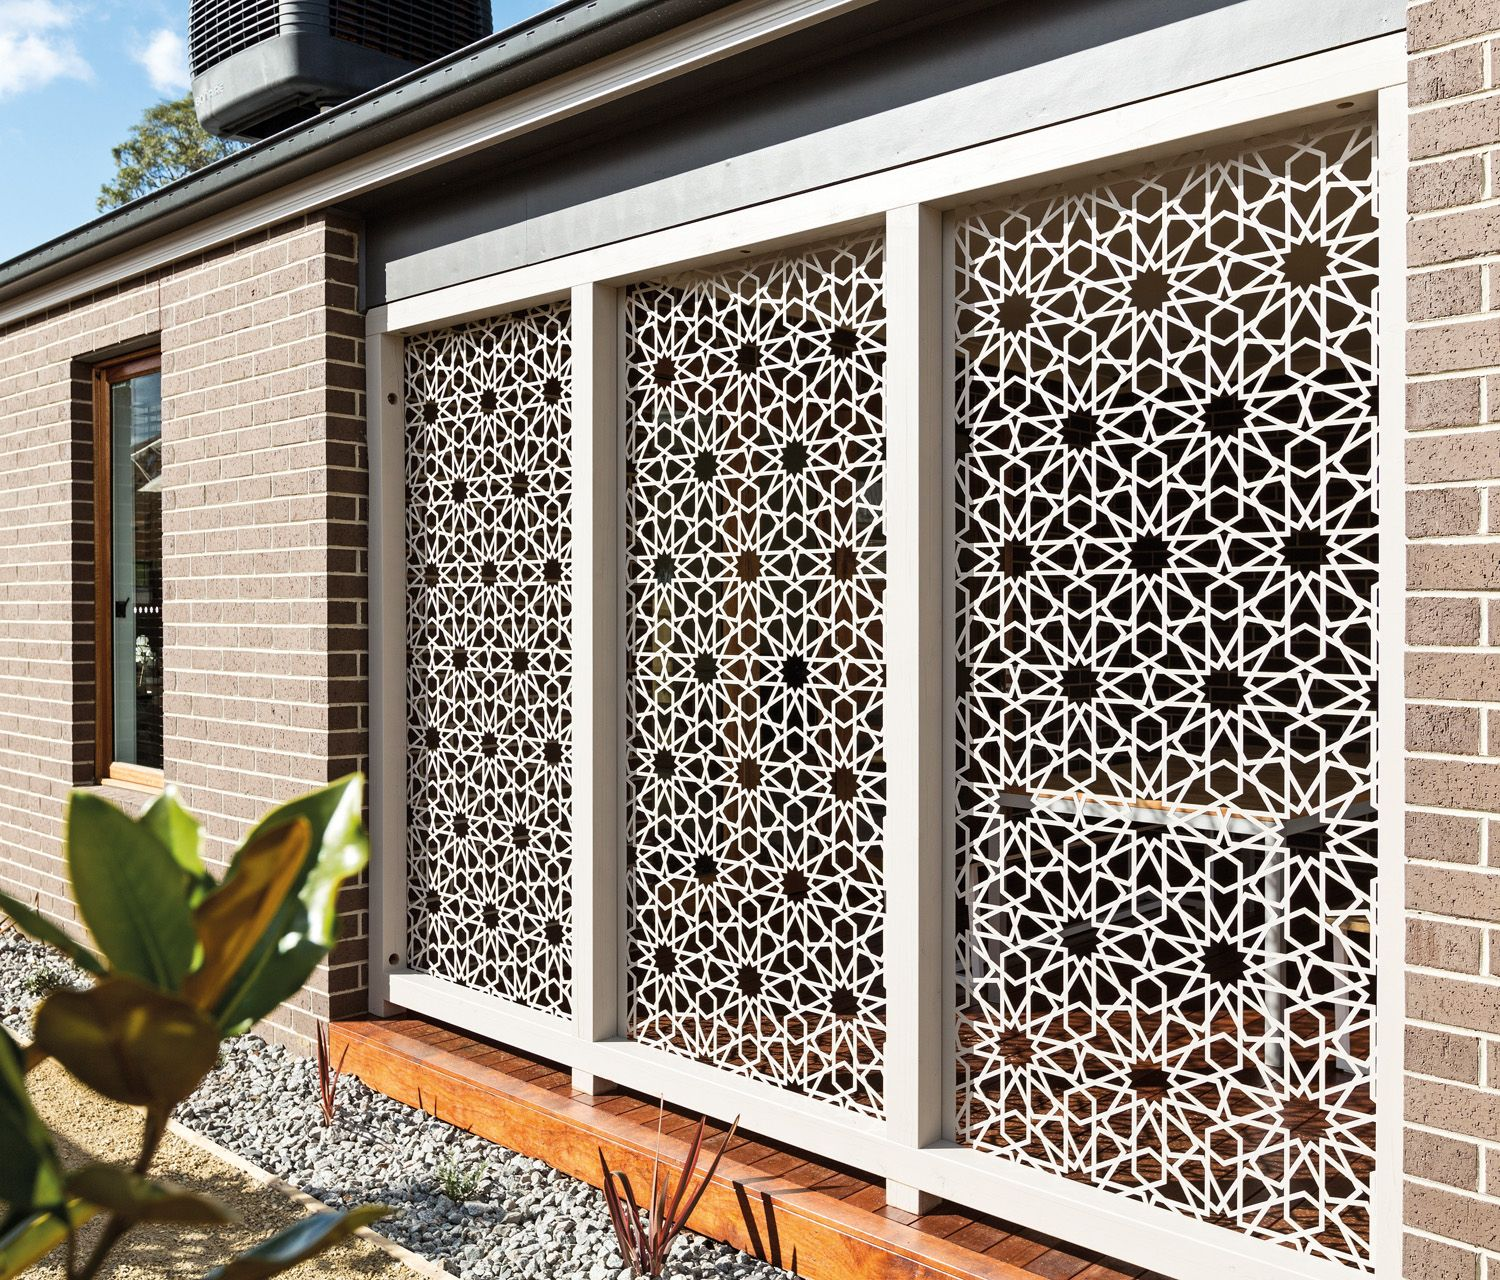 Metal Privacy Screen use stamped tin in garden |  your outdoor space with designer